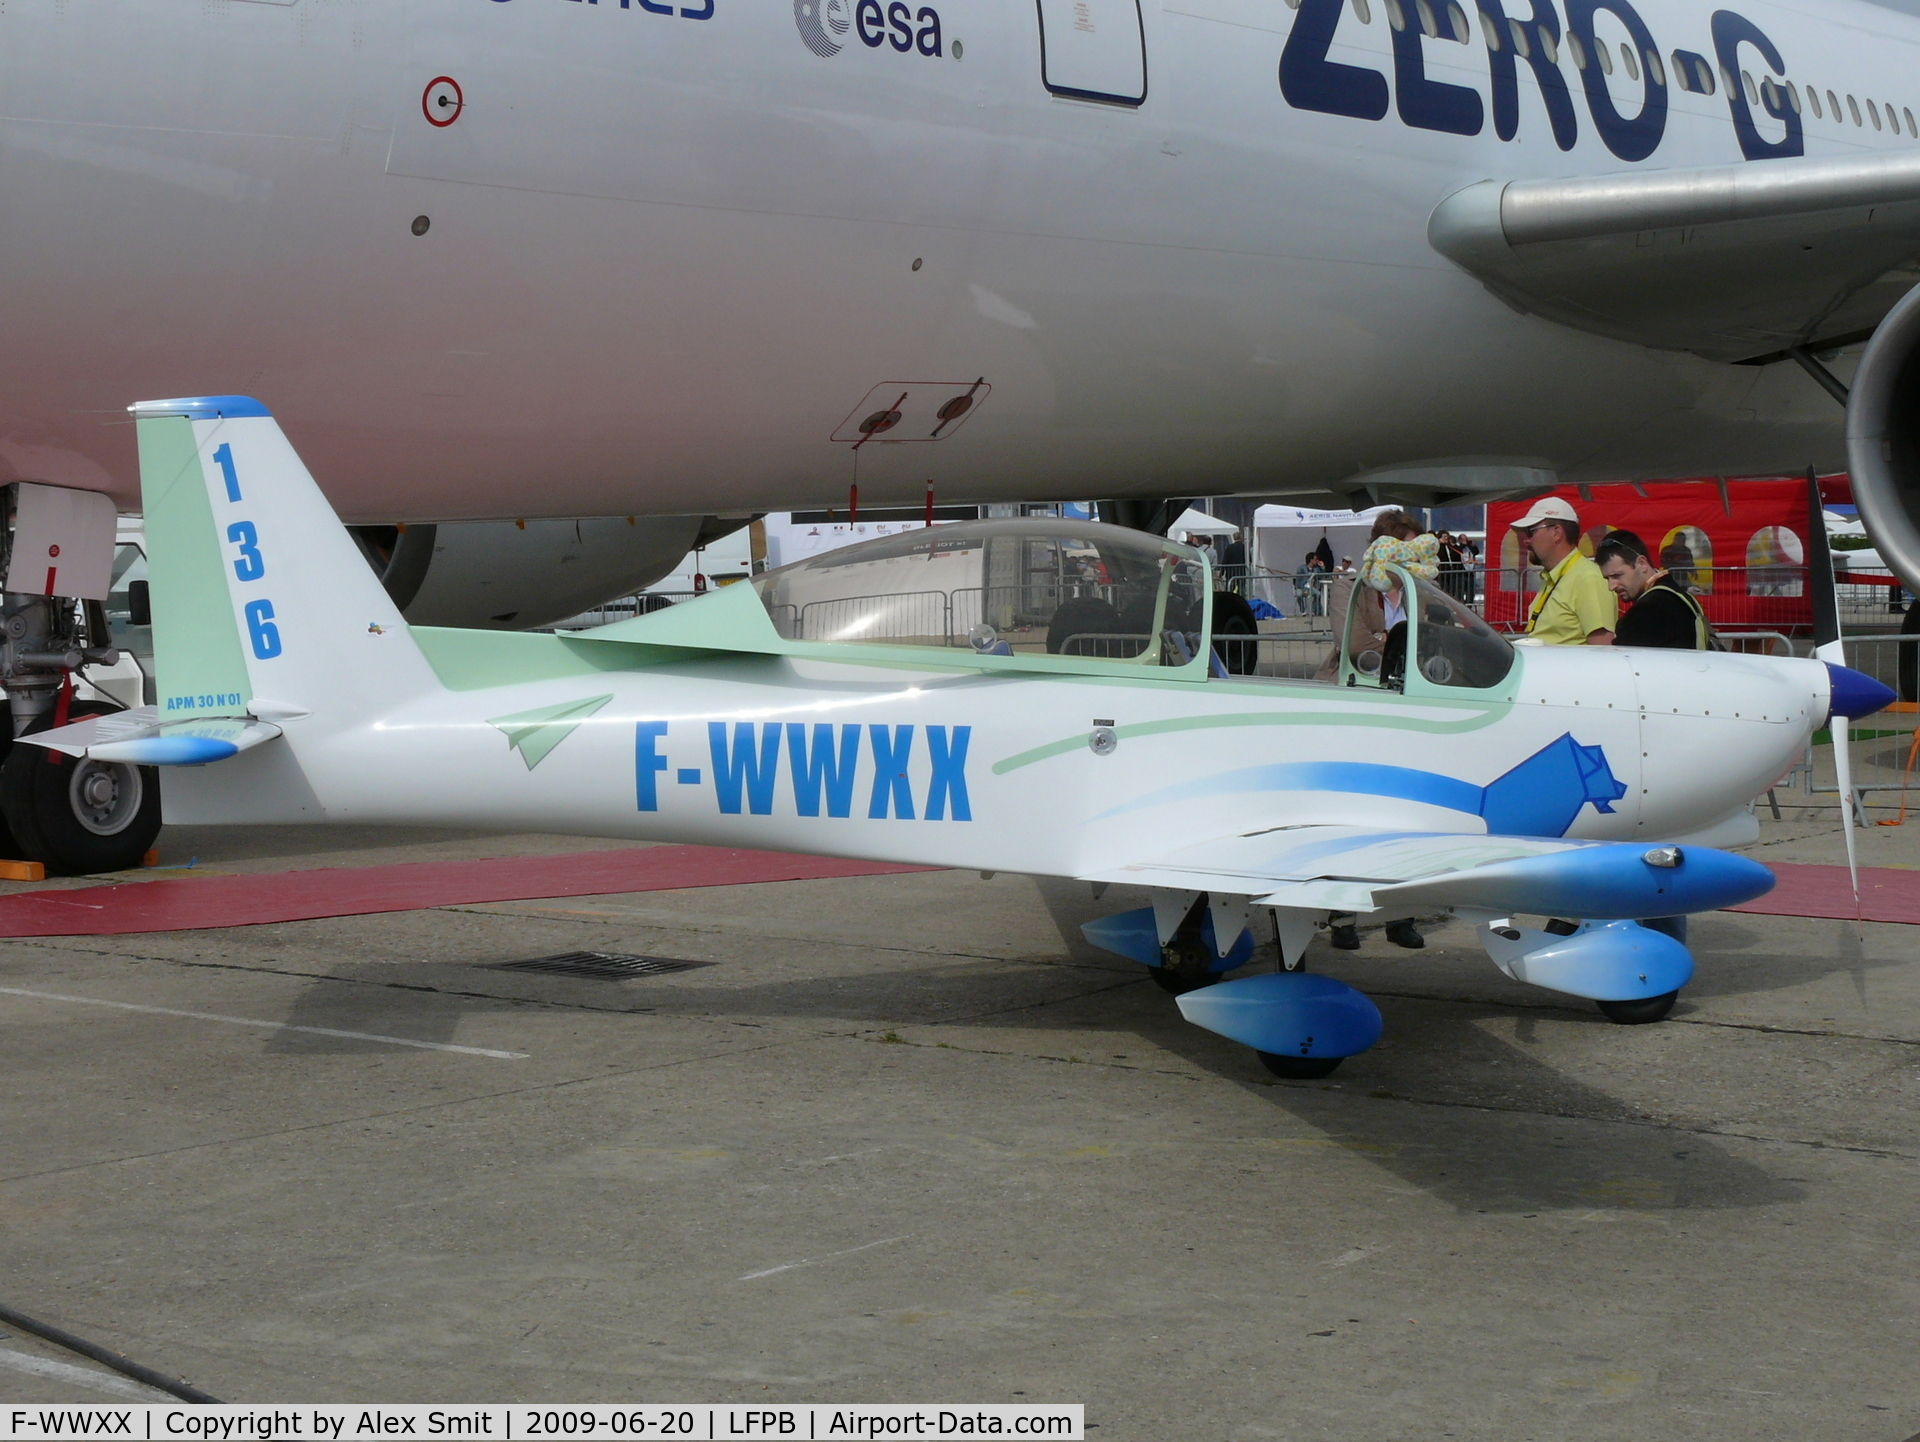 Wwxx http://www.airport-data.com/aircraft/photo/000352106.html